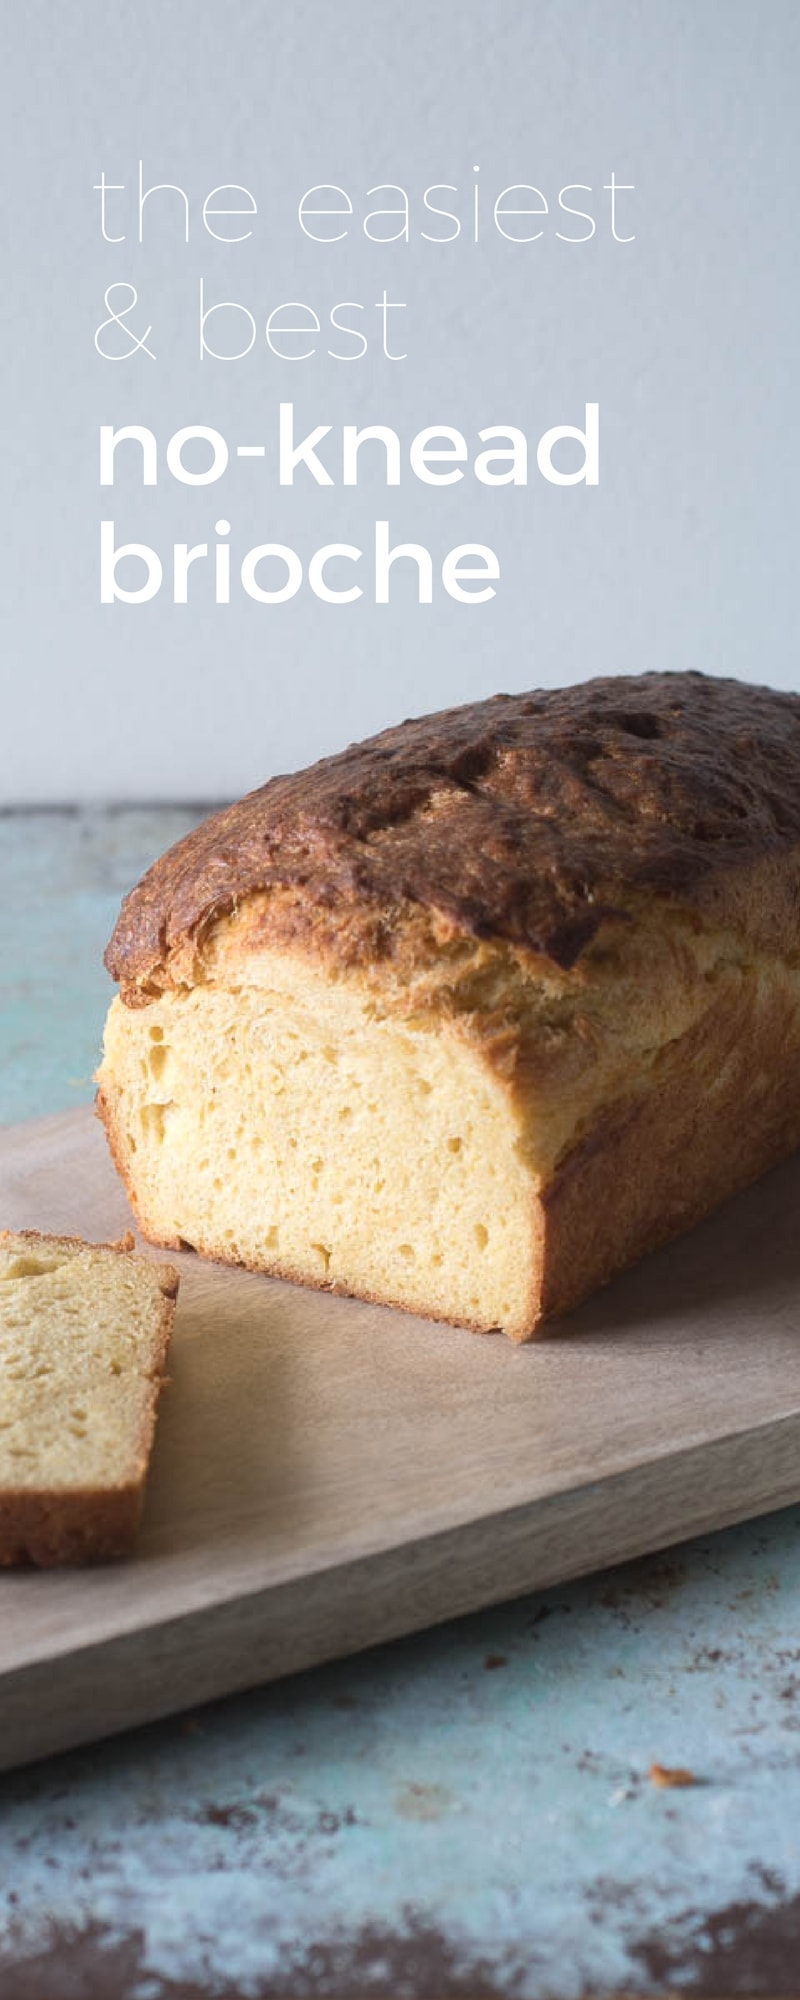 No-knead Brioche. Rich and buttery. The easiest and best brioche there is. From Blossom to Stem | www.blossomtostem.net